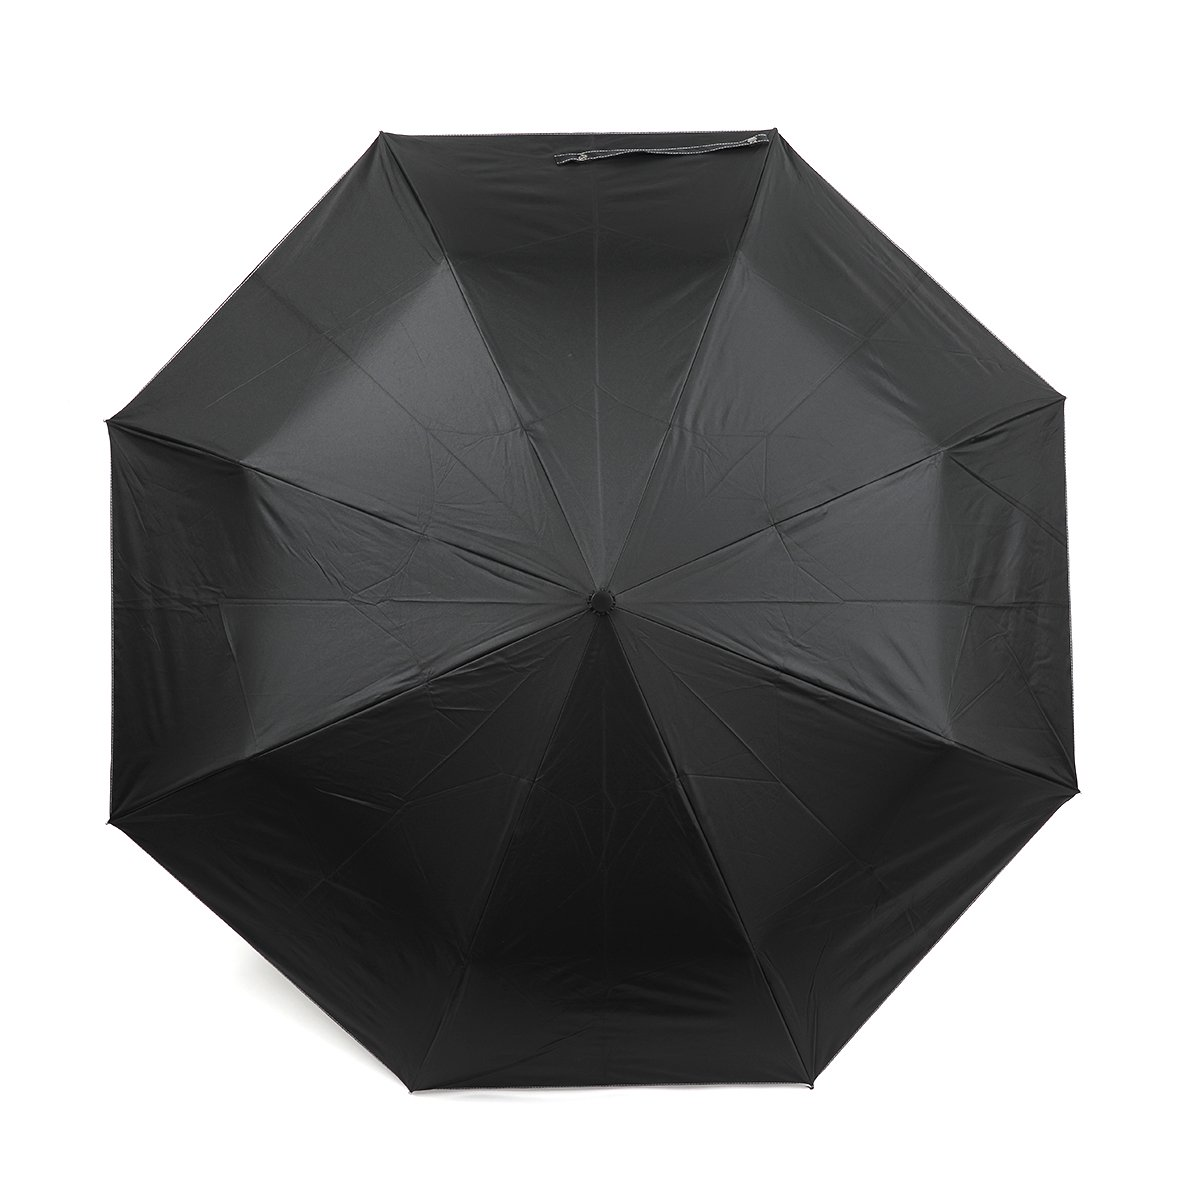 588K UV AUTOMATIC FOLDING UMBRELLA 詳細画像1